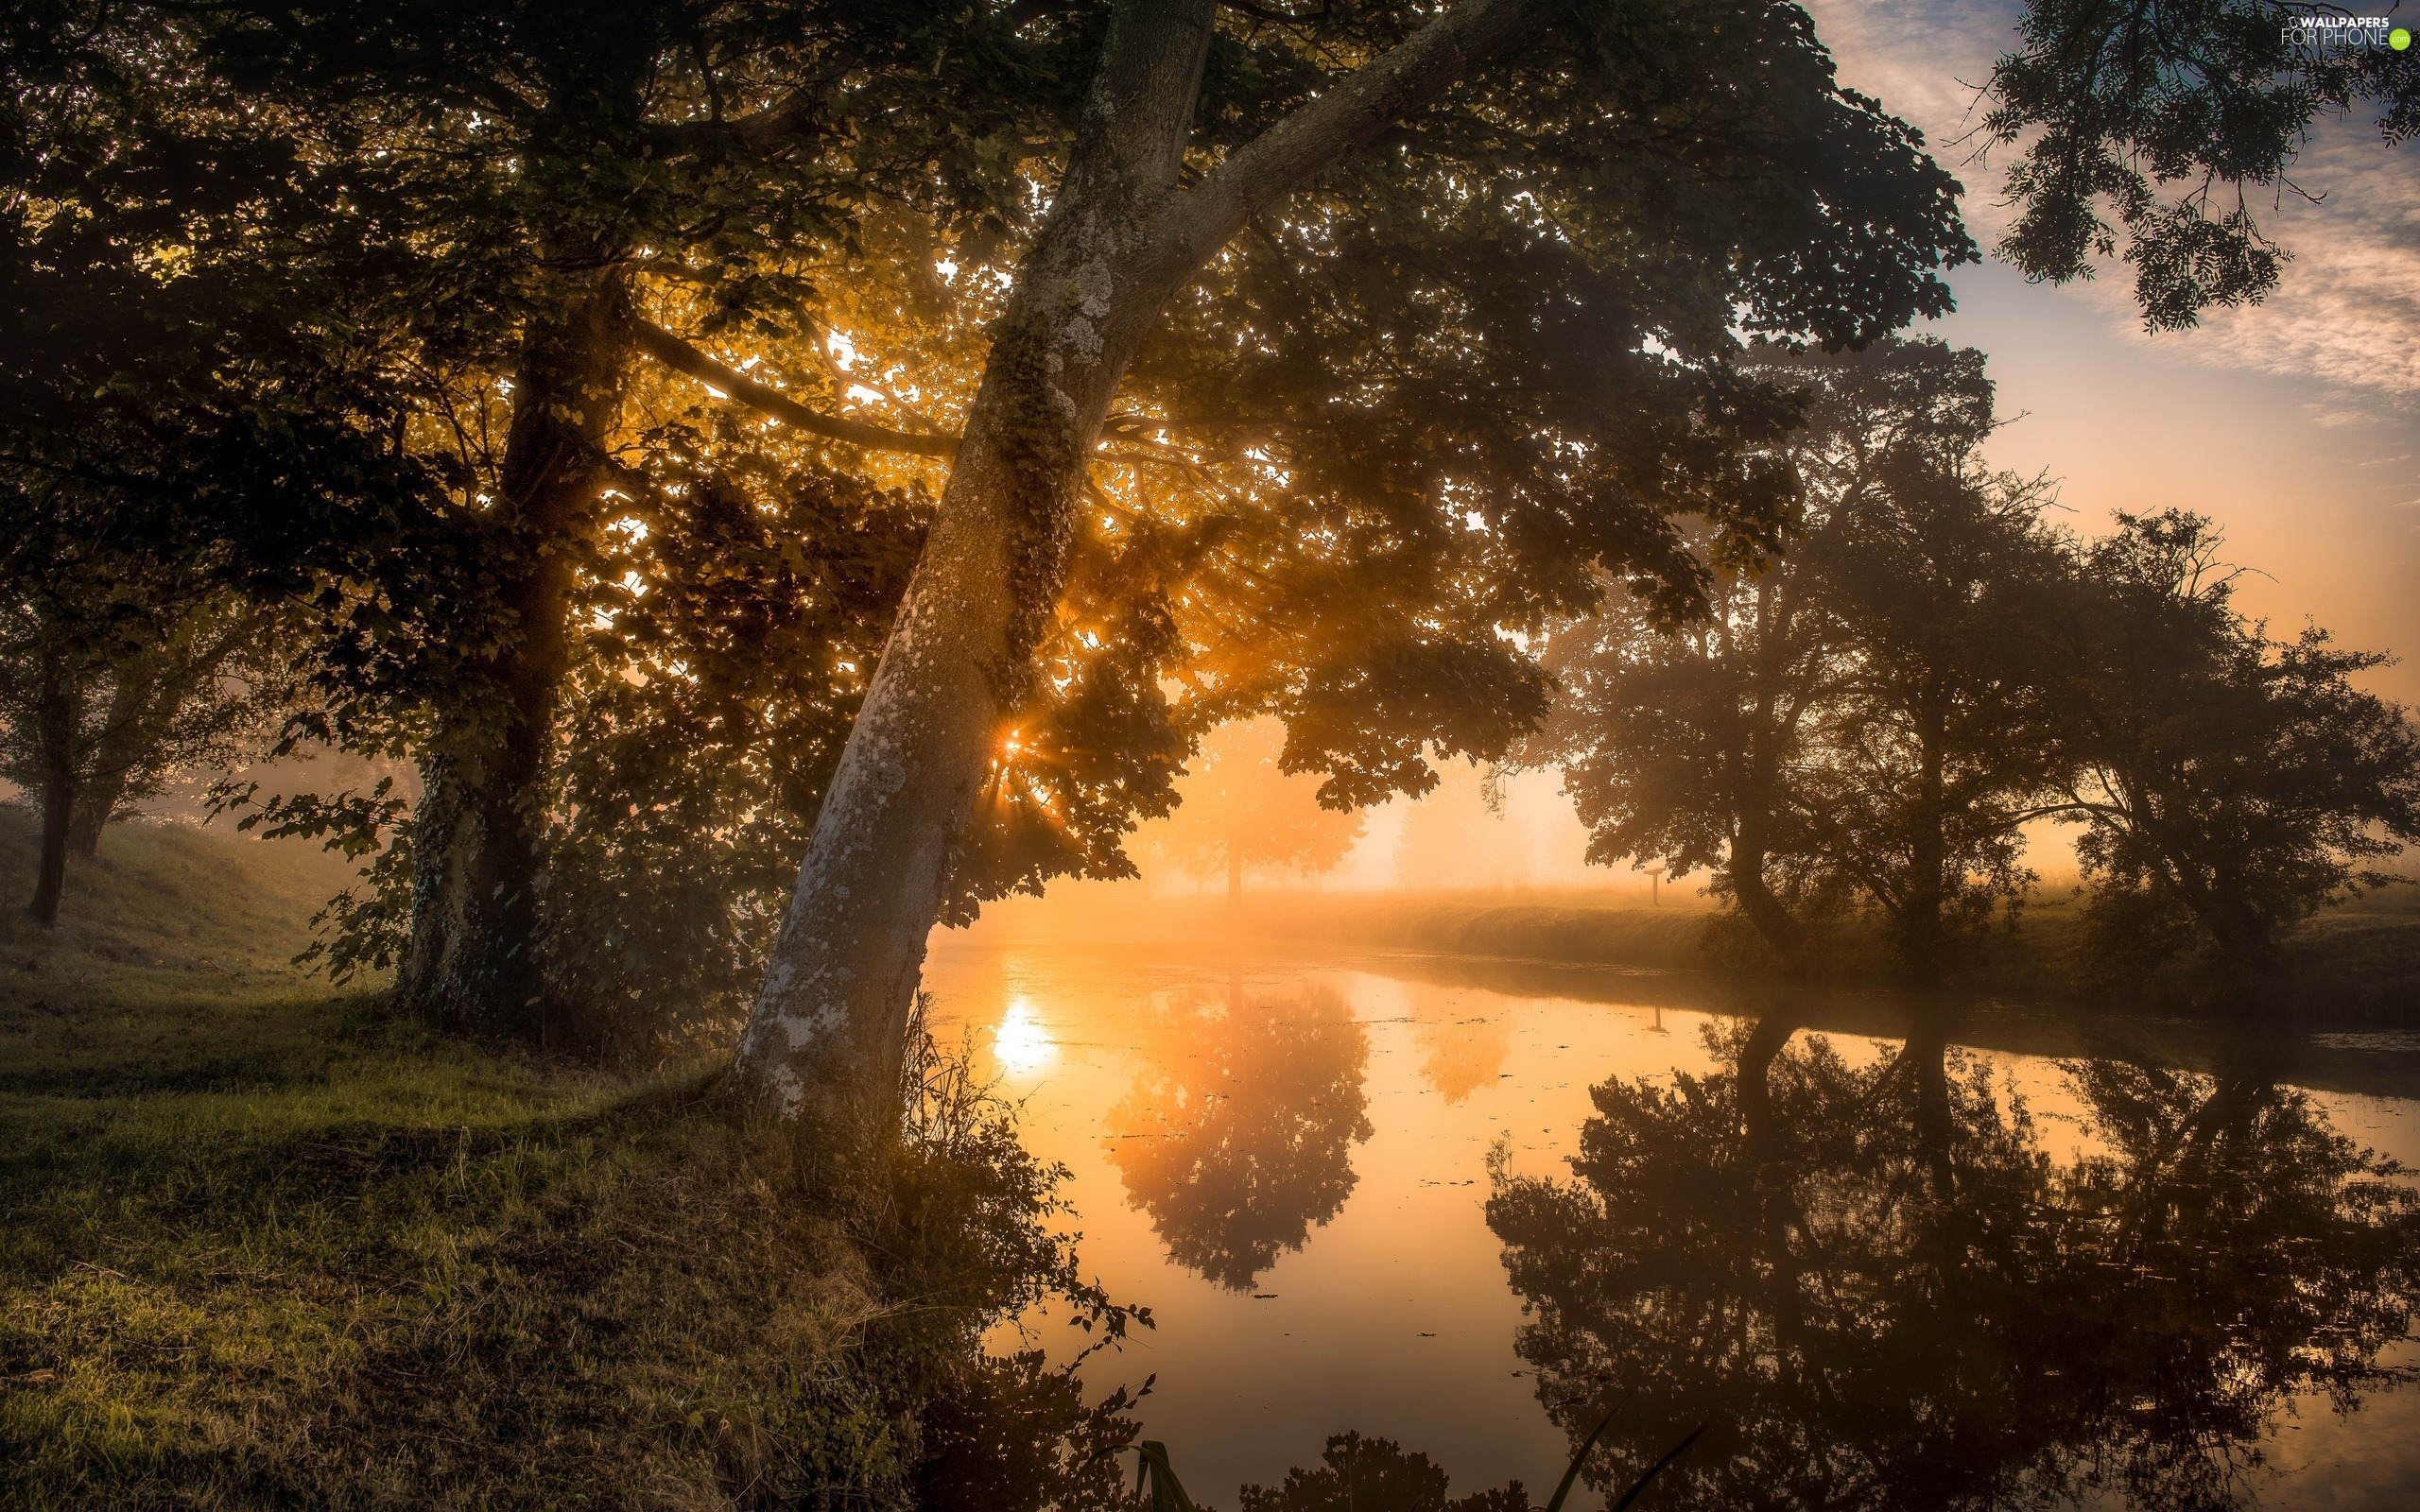 Northamptonshire County, England, Lyveden New Bield, River, morning, Sunrise, trees, viewes, Fog